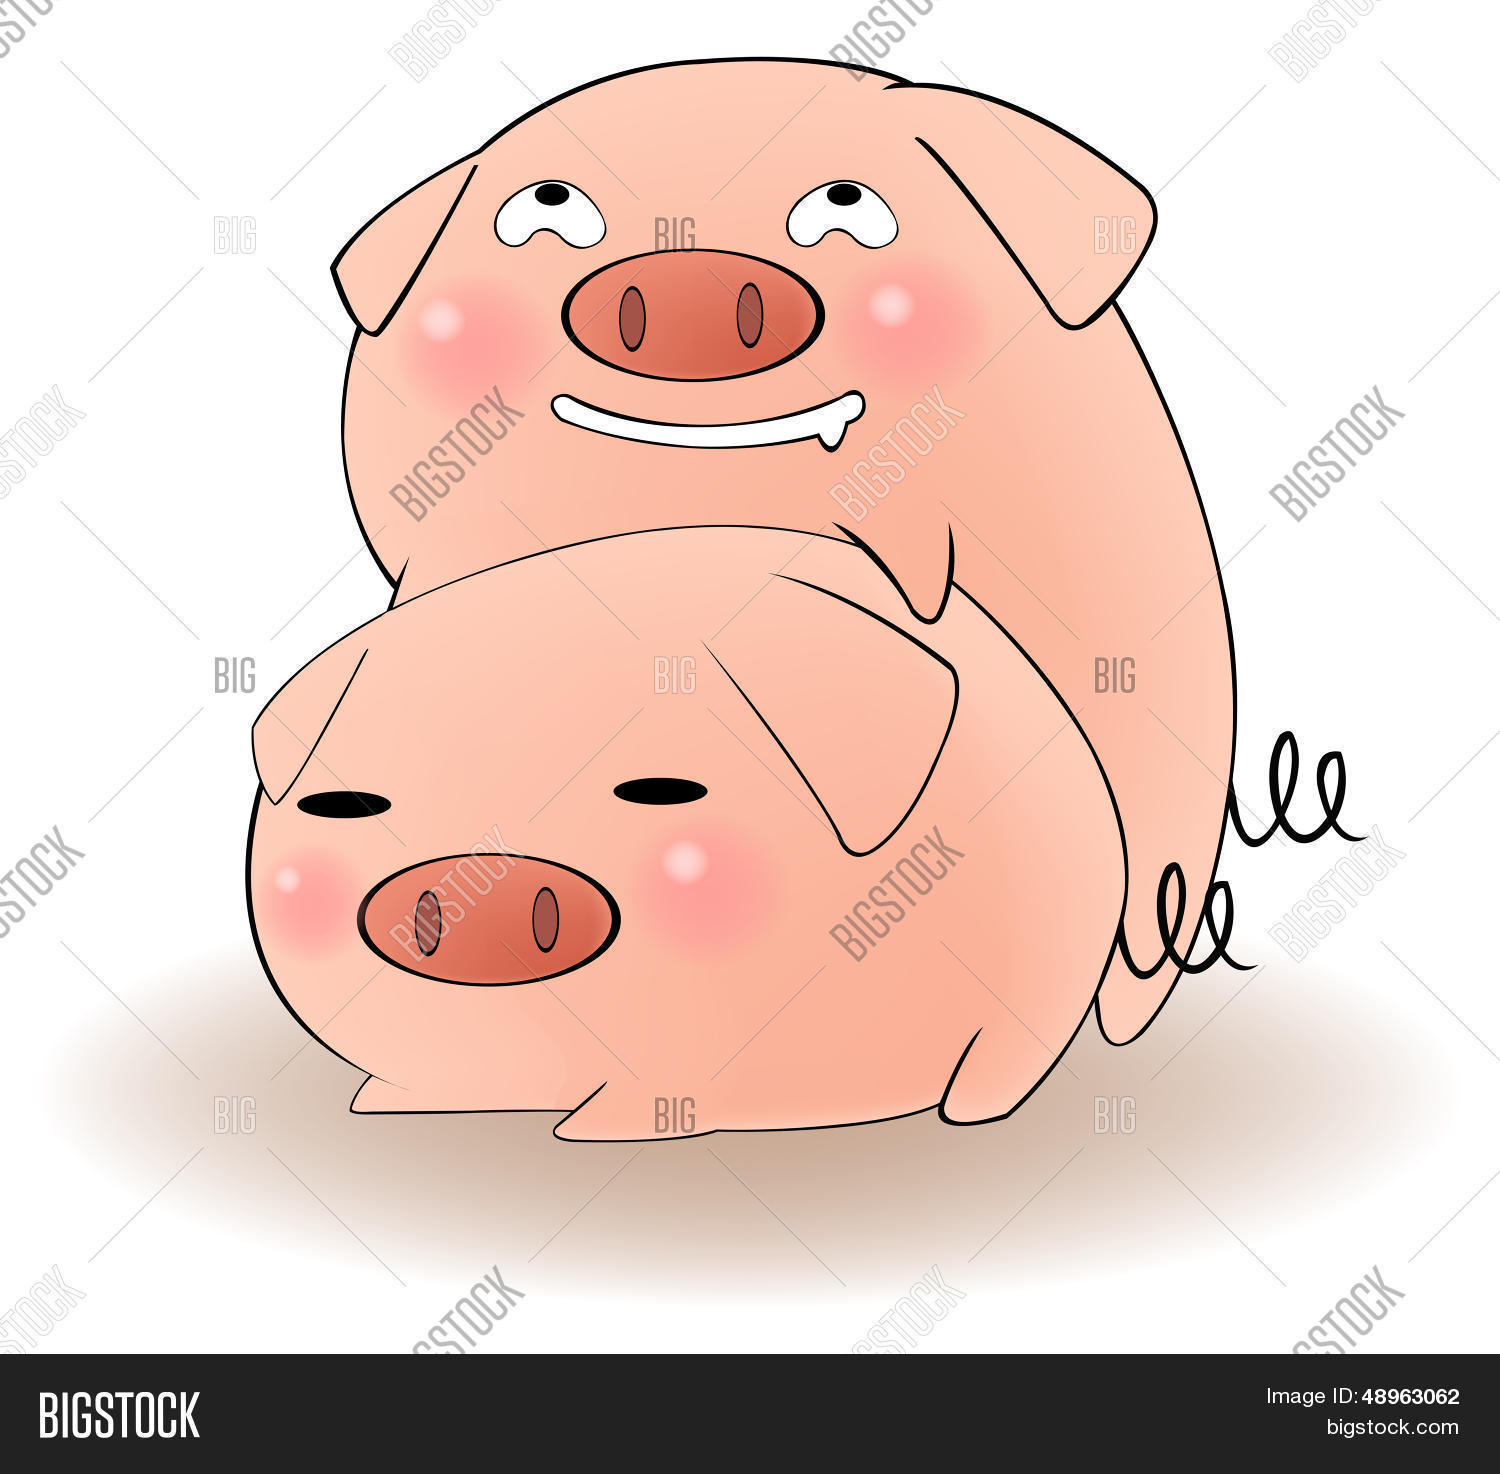 Is it safe haveing sex a pig